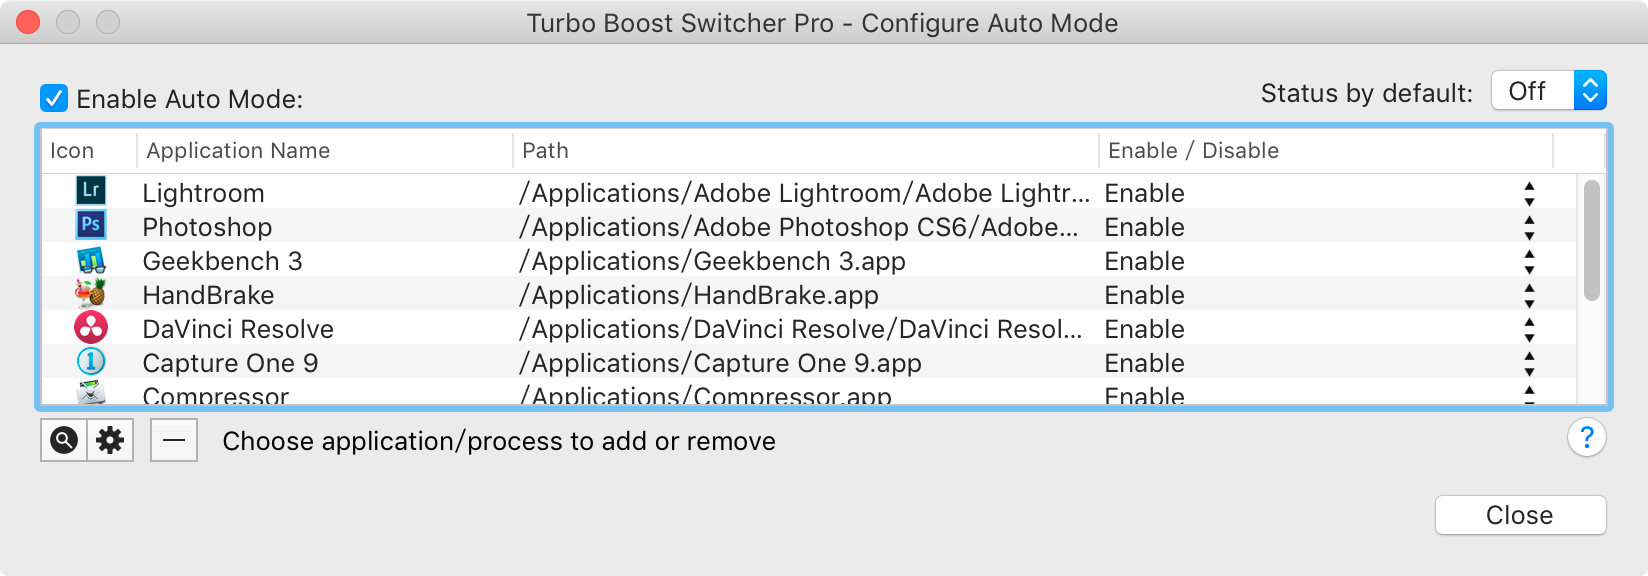 Turbo Boost Switcher 2 Auto Mode